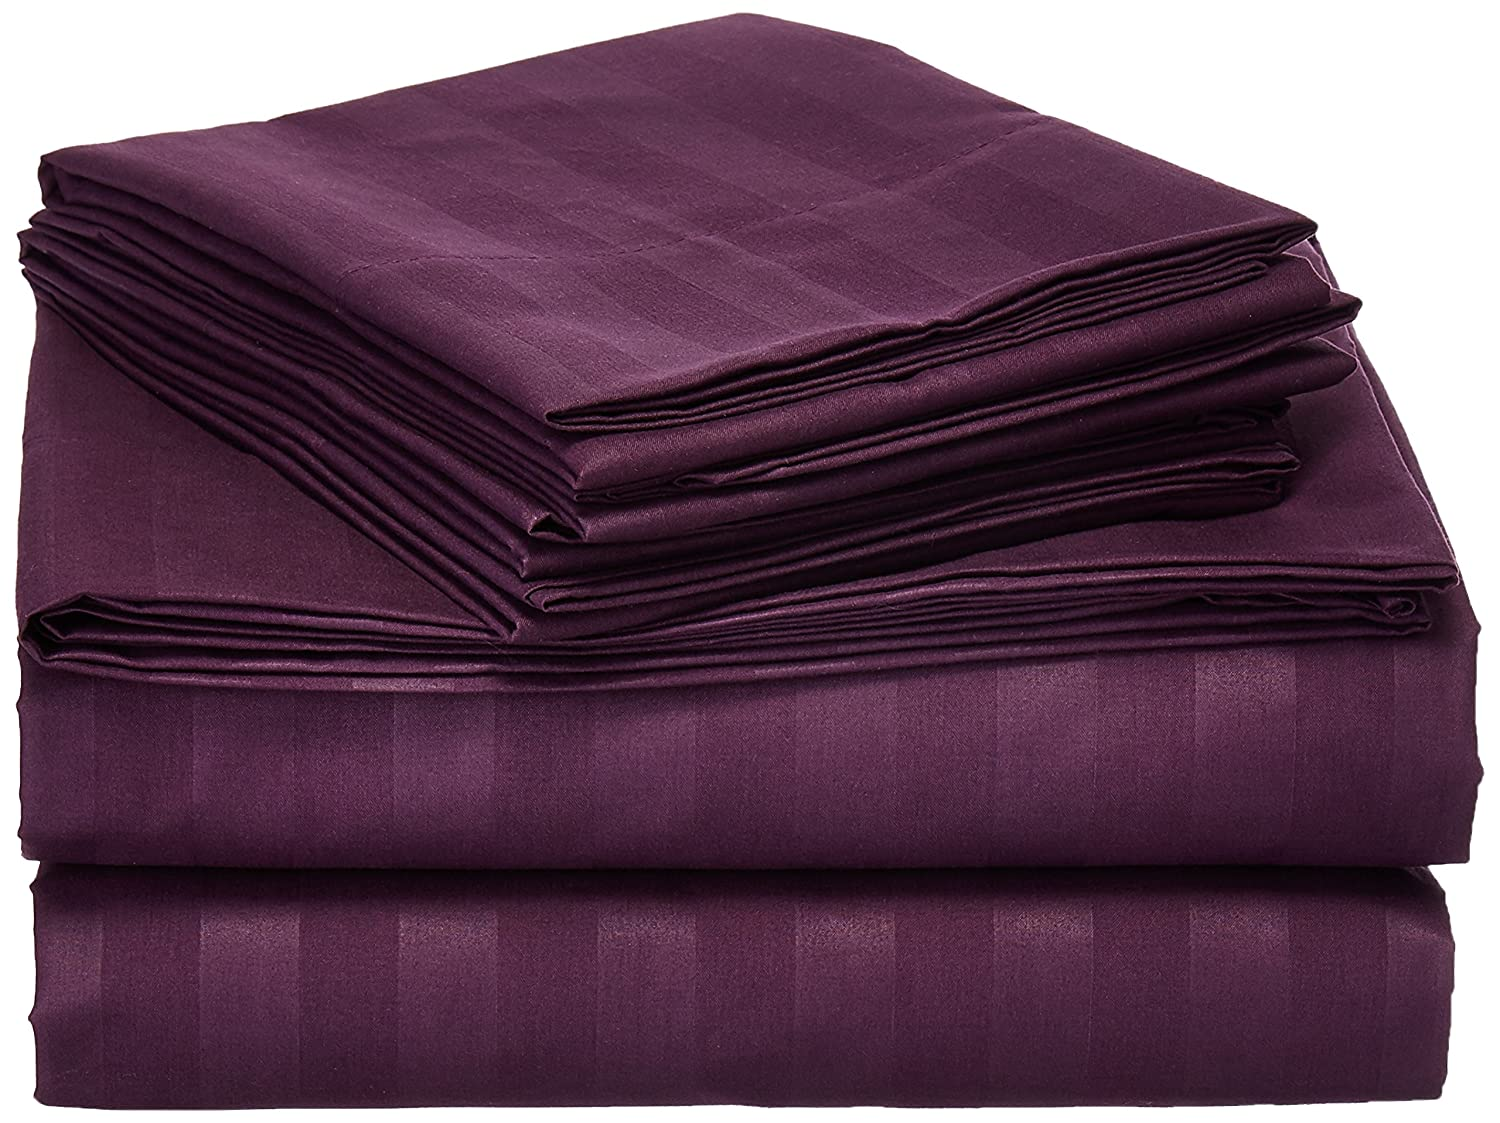 6-Piece STRIPE Bed Sheet Set, Queen Purple